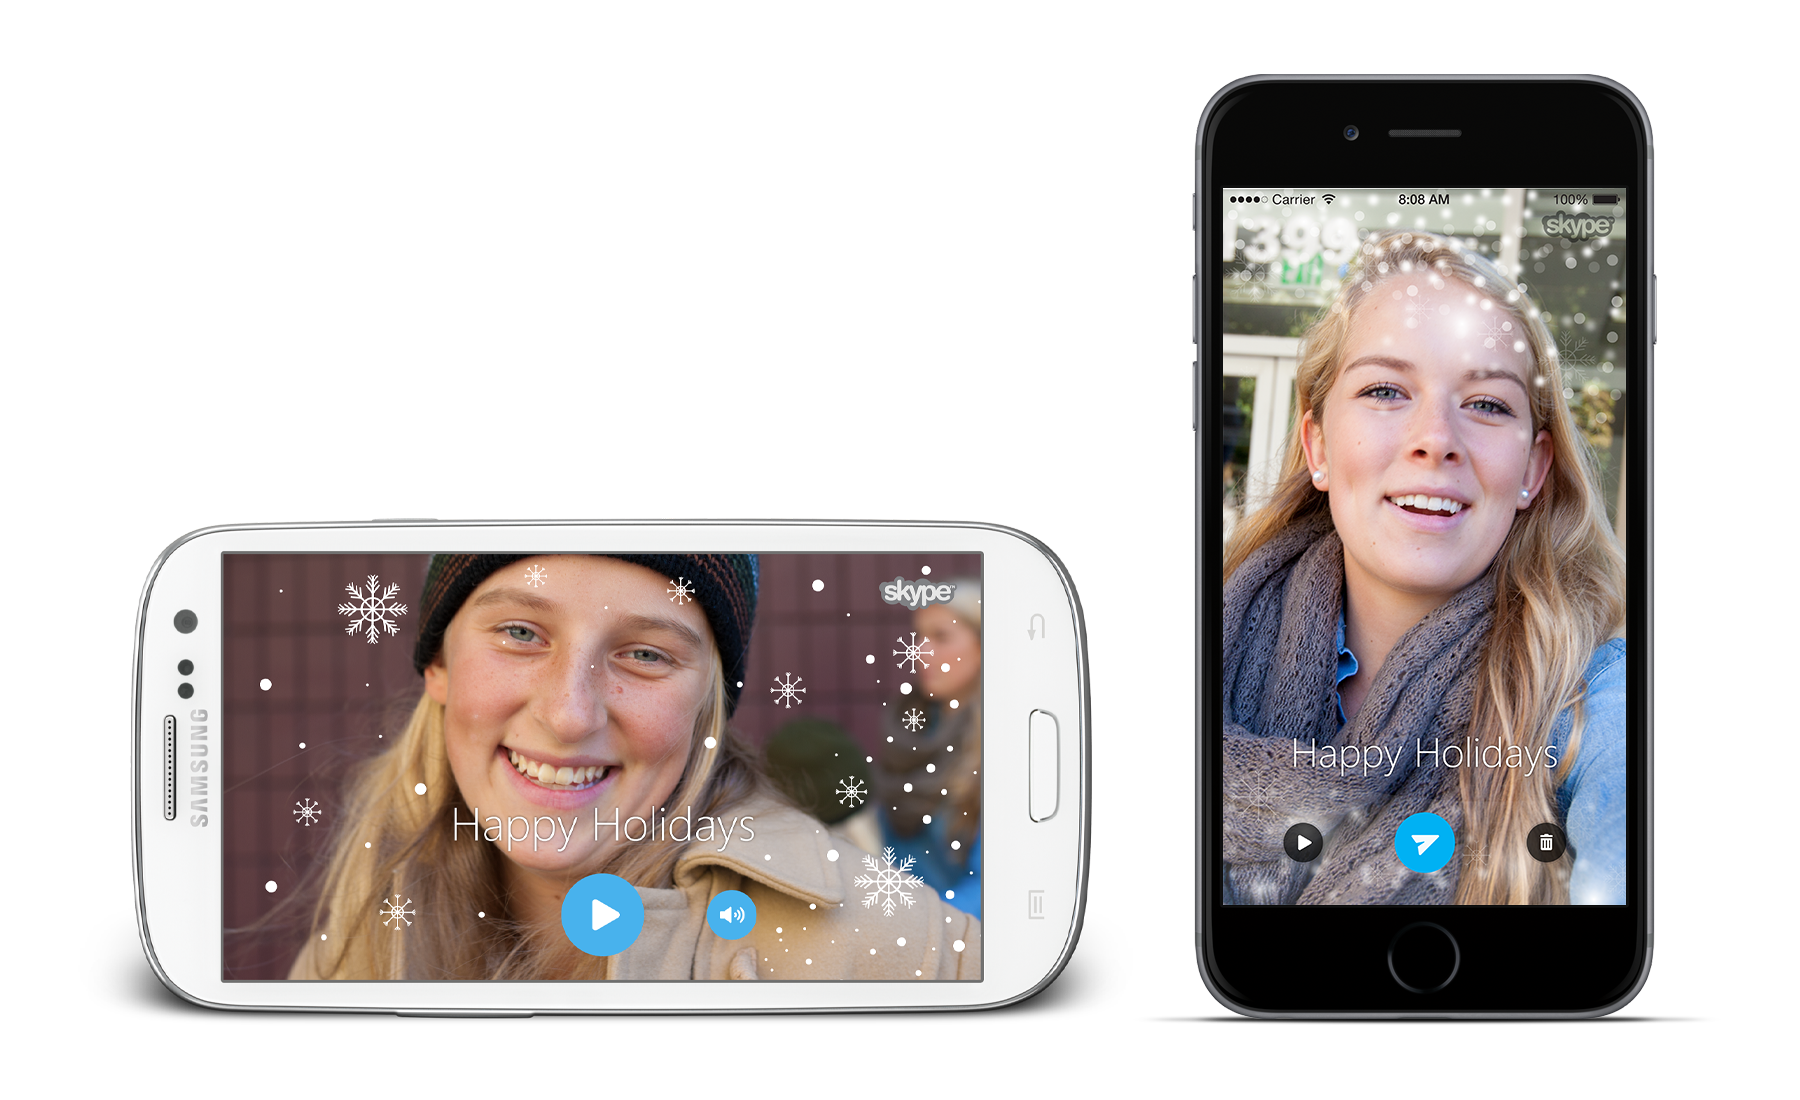 Let It Snow] Skype App Gets Holiday-Themed Update With Video Cards